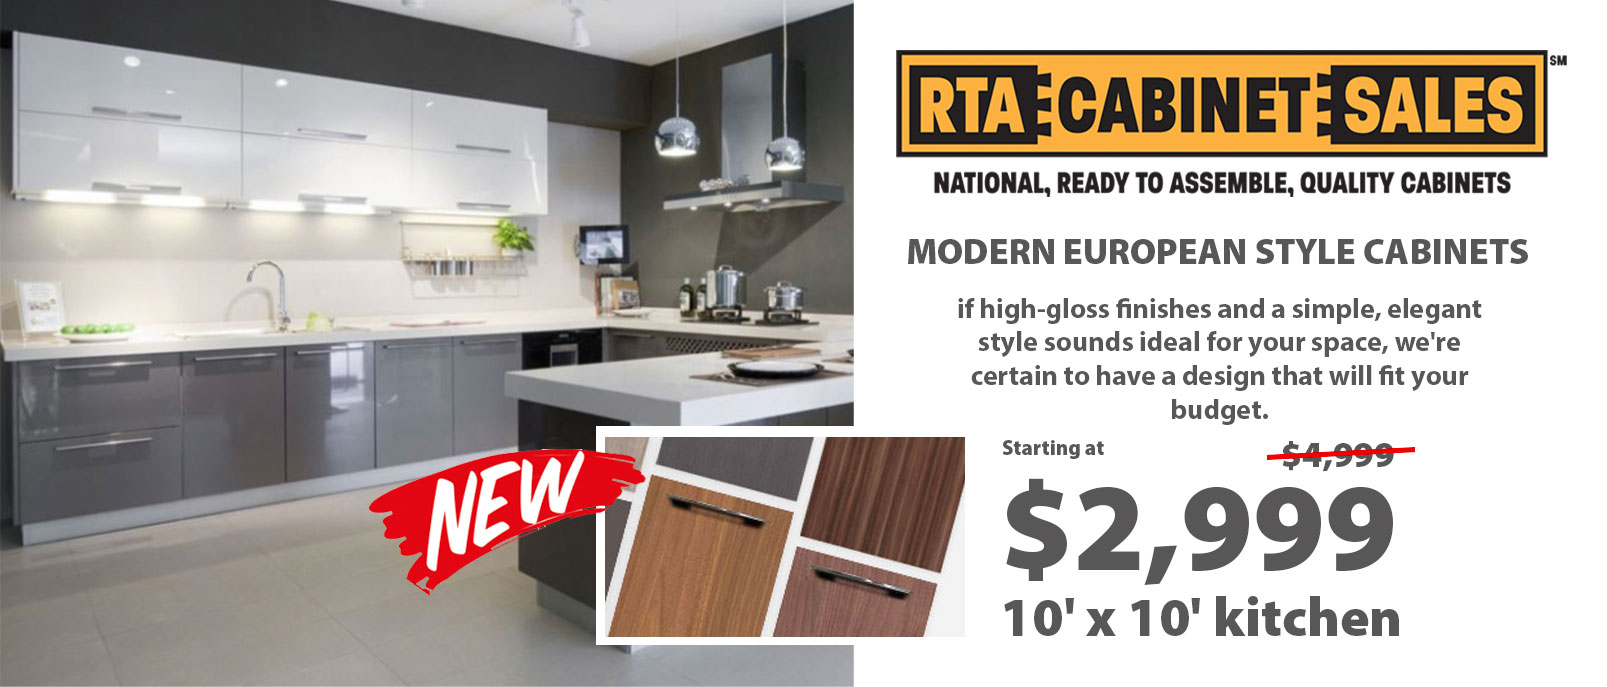 European Style Cabinets Starting at only $2999 Cabinets Only